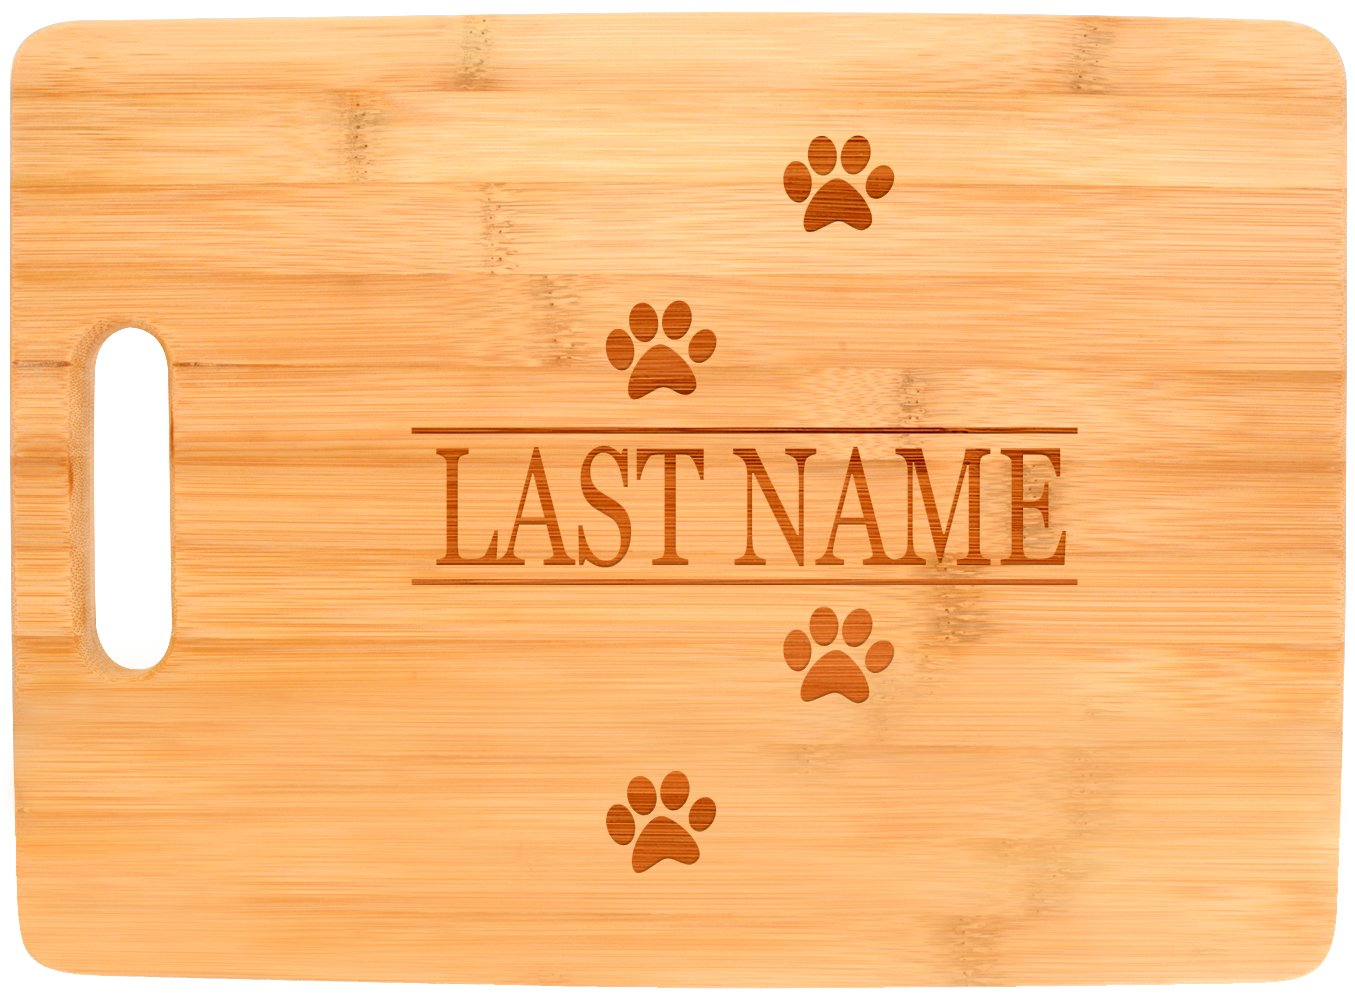 Customized Last Name Dog Cat Lover Wedding Gift Personalized Big Rectangle Bamboo Cutting Board